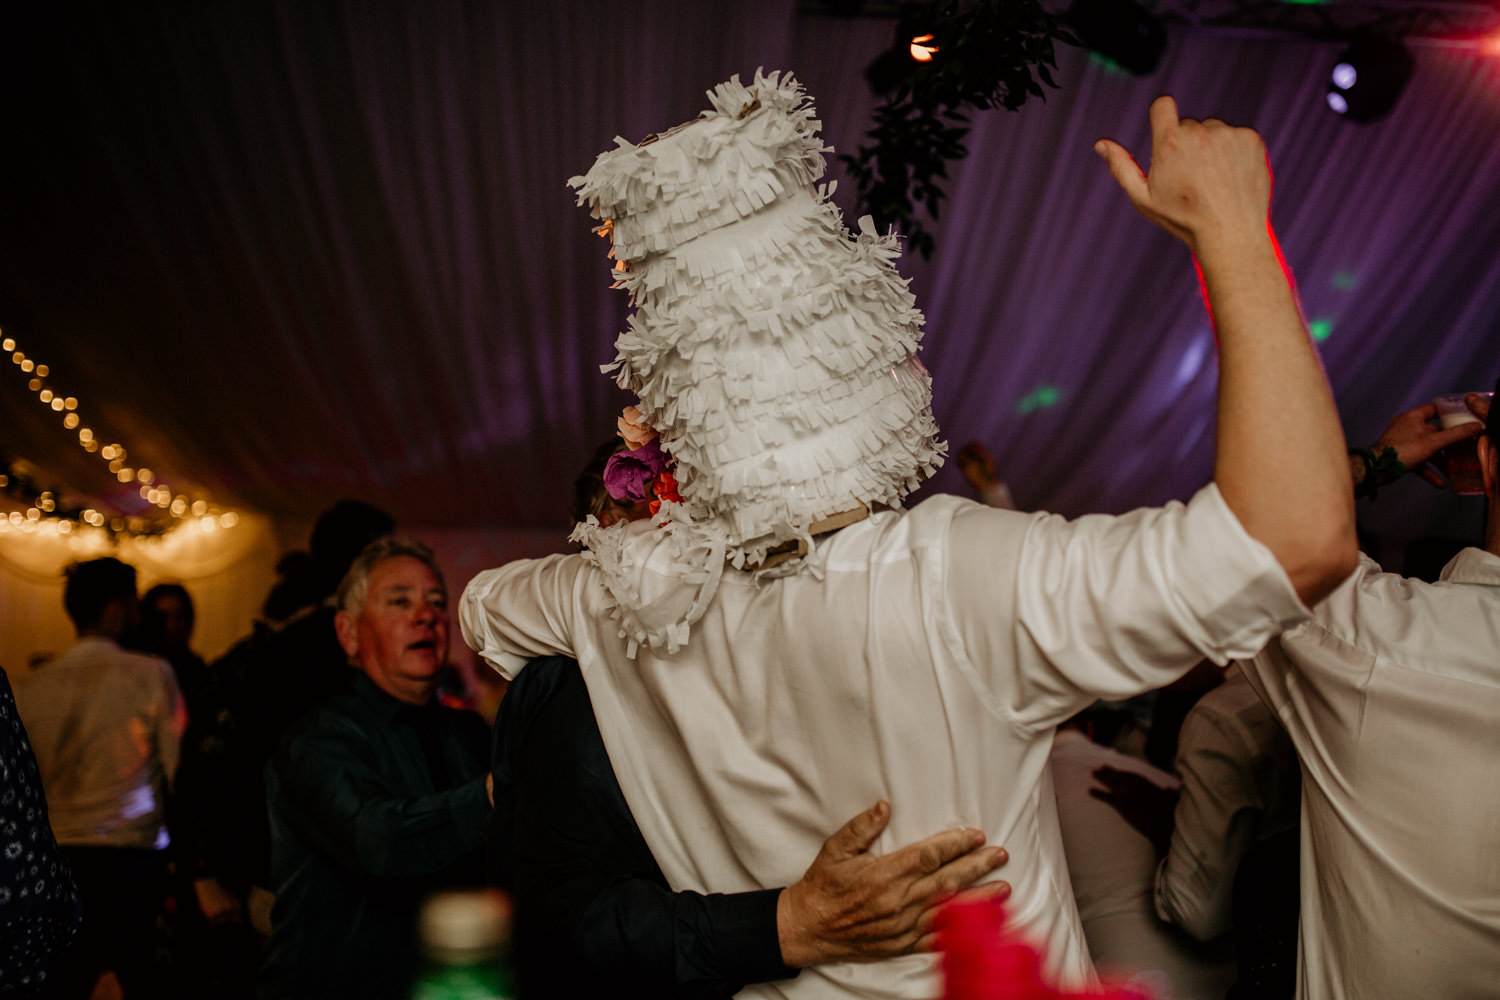 guest during the wedding reception wearing a confetti cake on his head